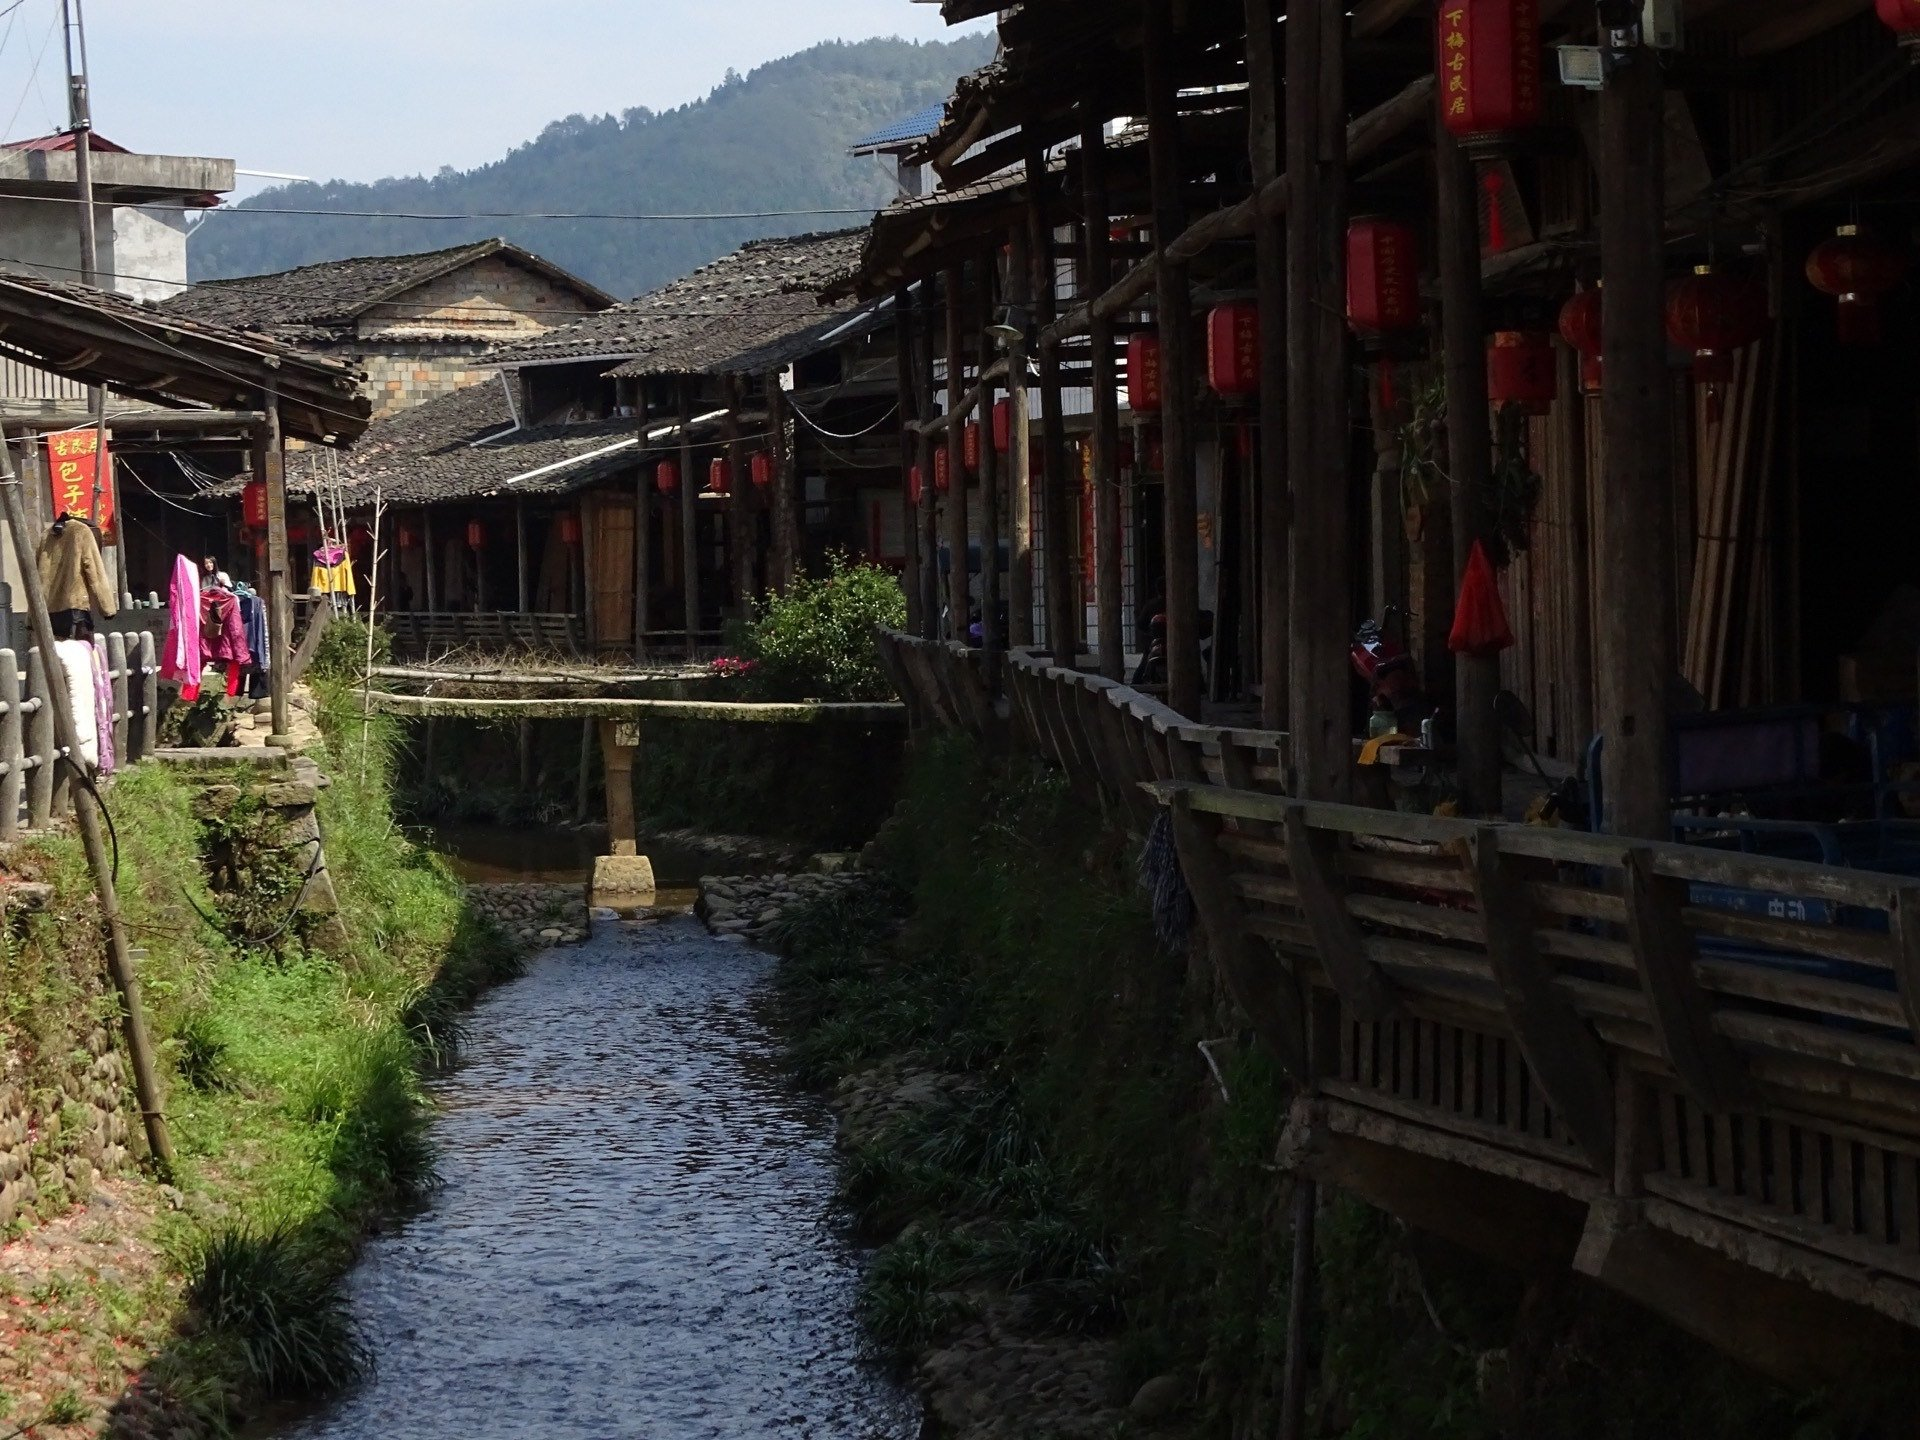 View down canal of Xiamei Village